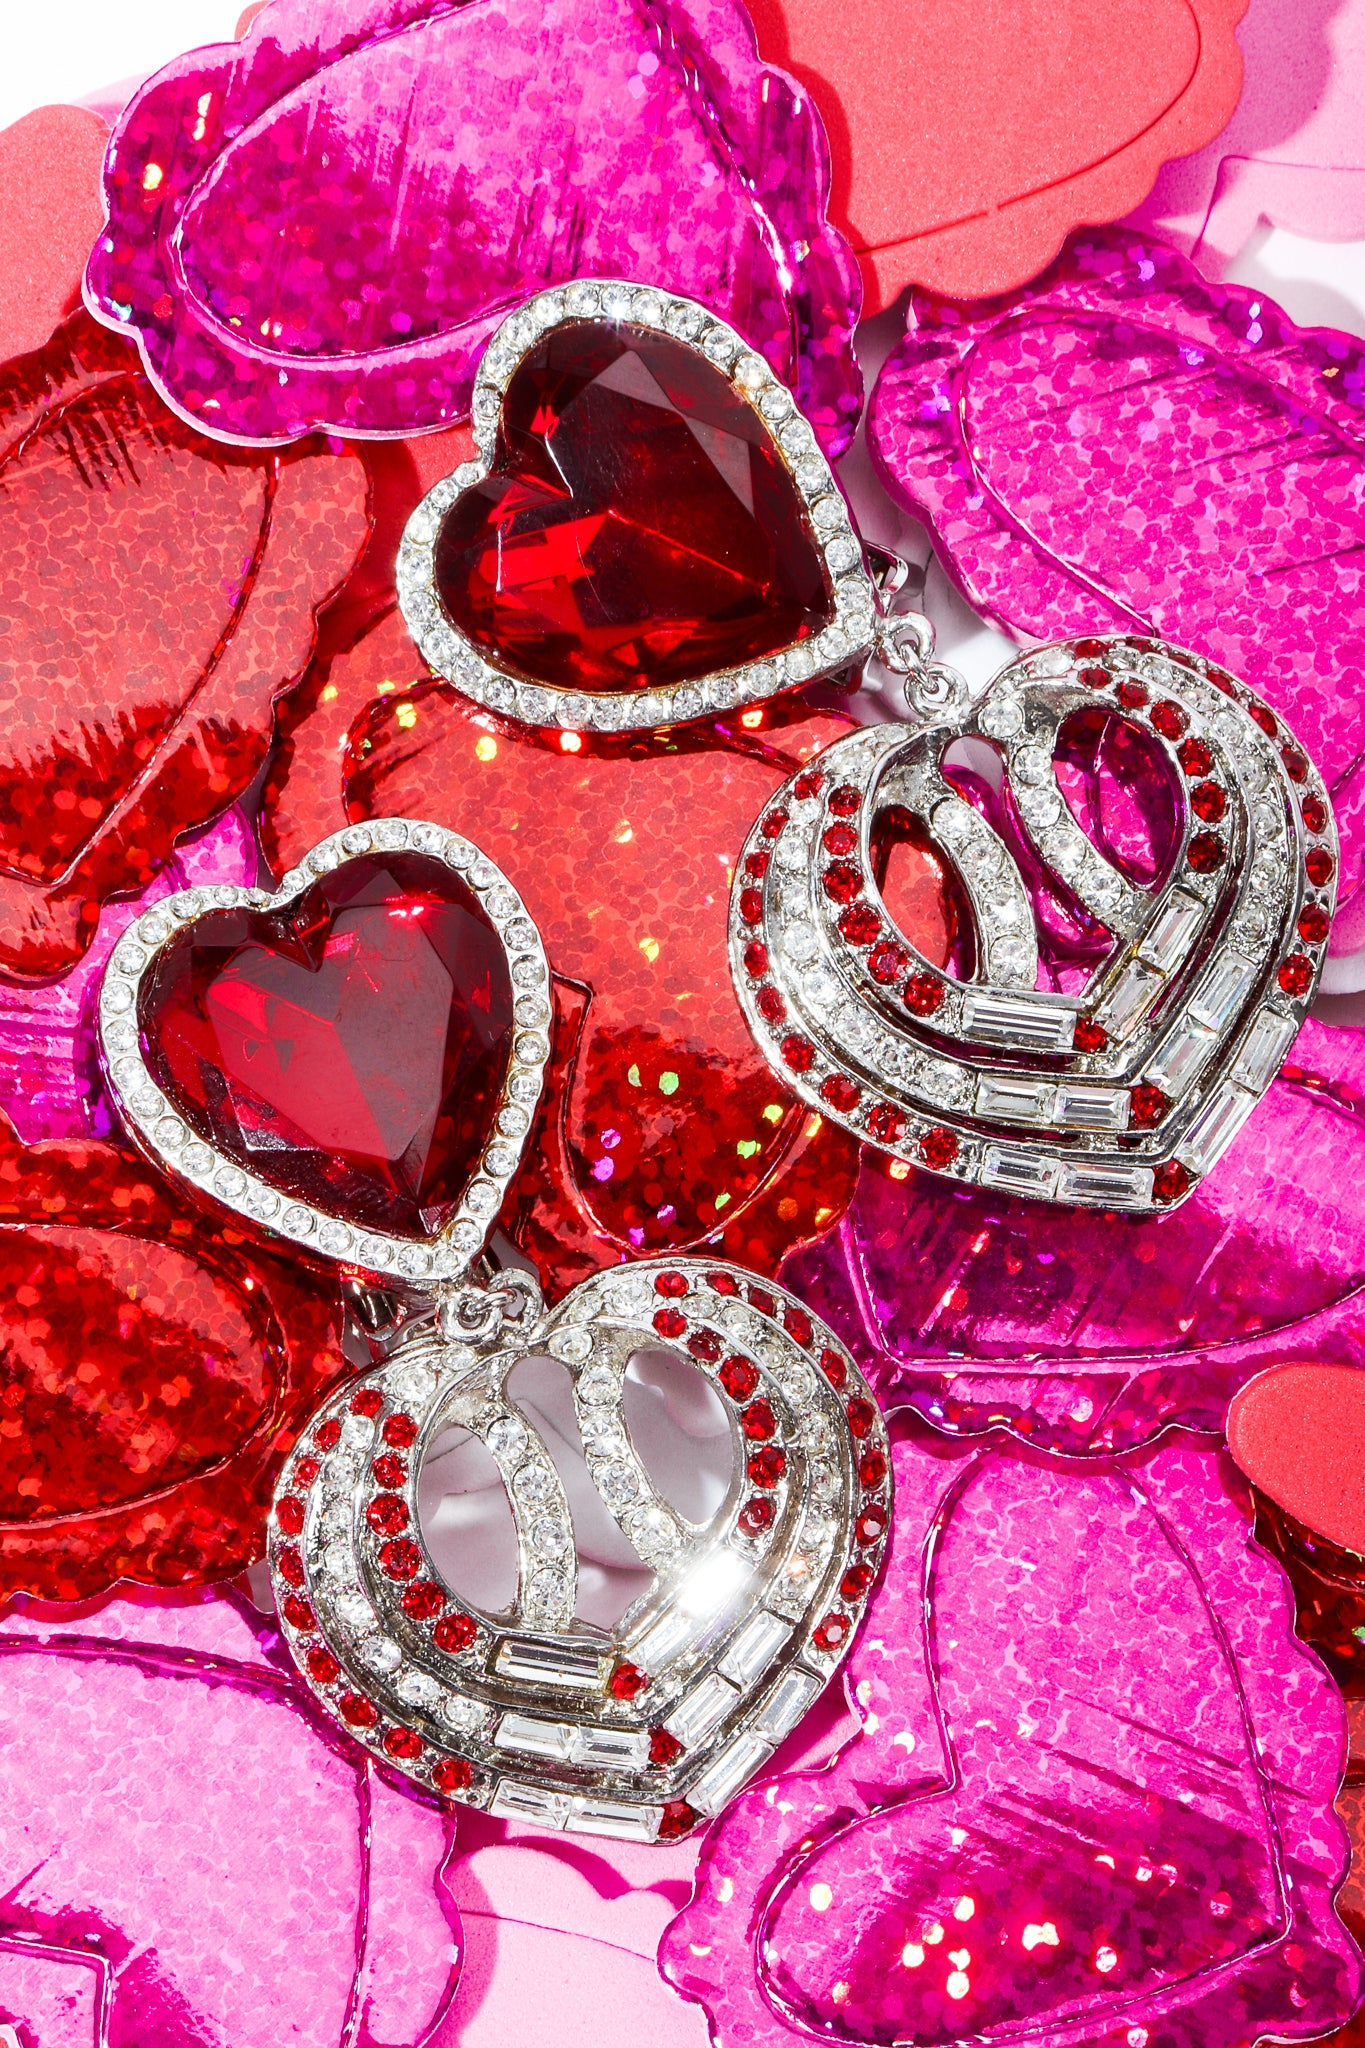 Red Faux Ruby Rhinestone Heart Earrings on holographic glitter heart shapes